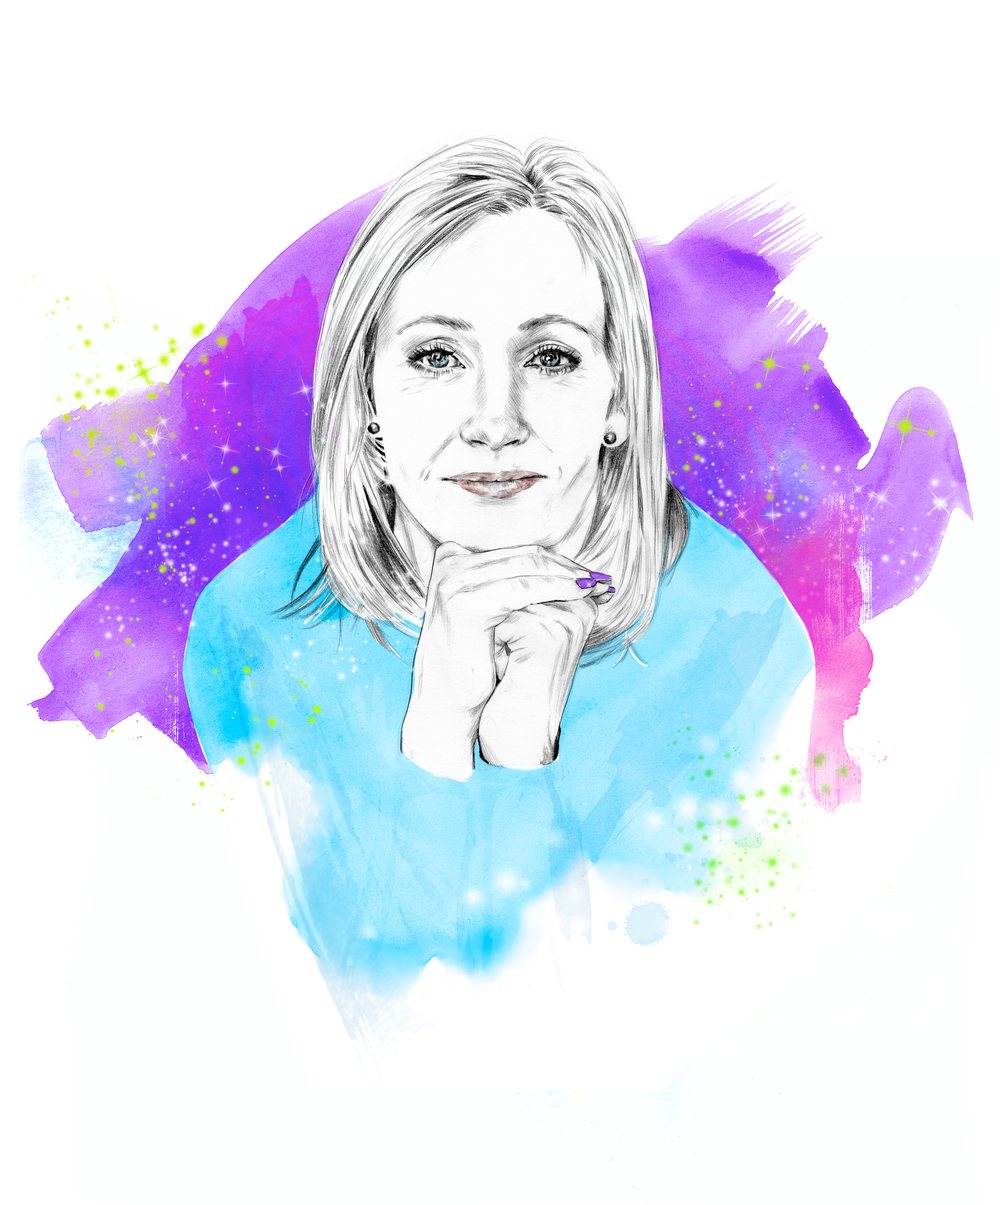 READERS-DIGEST-JK-ROWLING-FINAL.jpg